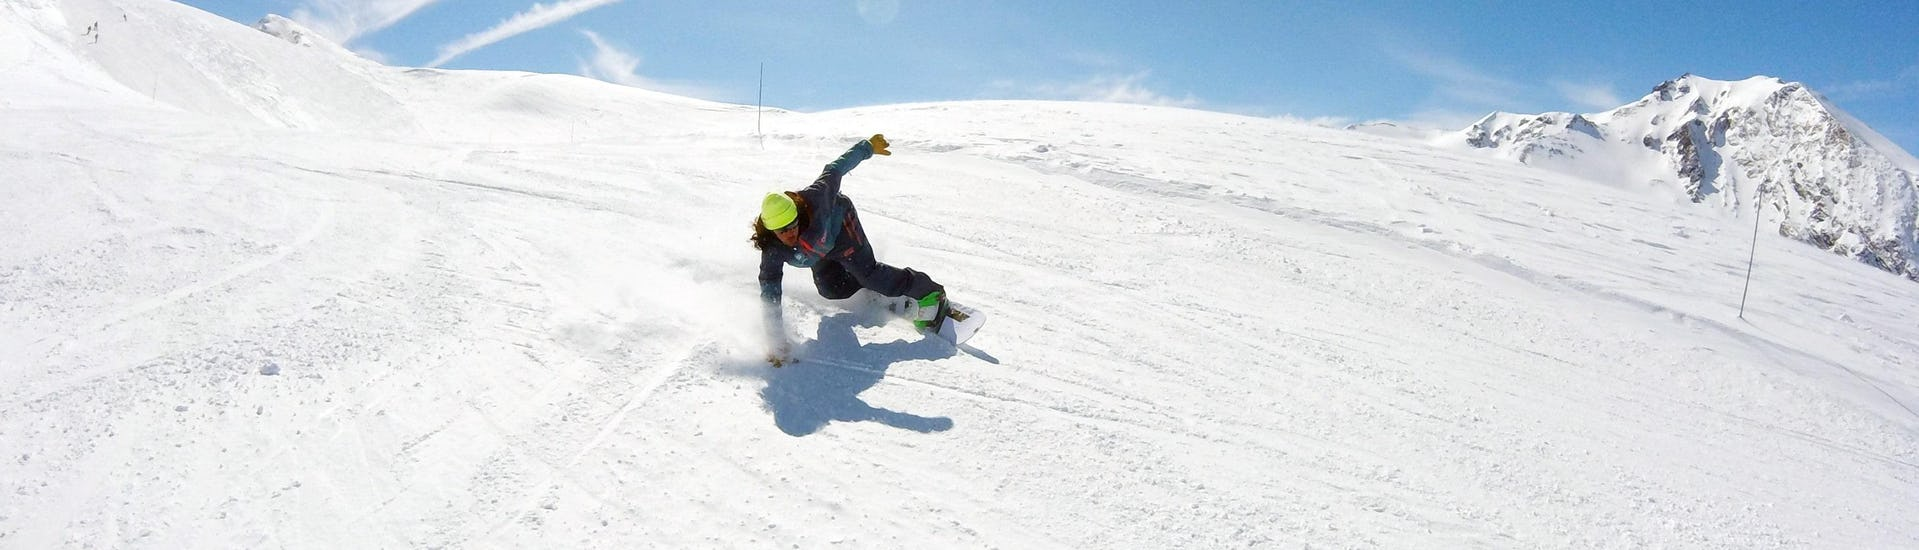 A snowboarder is sliding down a snowy slope during his Private Snowboarding Lessons - All Levels & Ages with the ski school ESI Valfréjus.